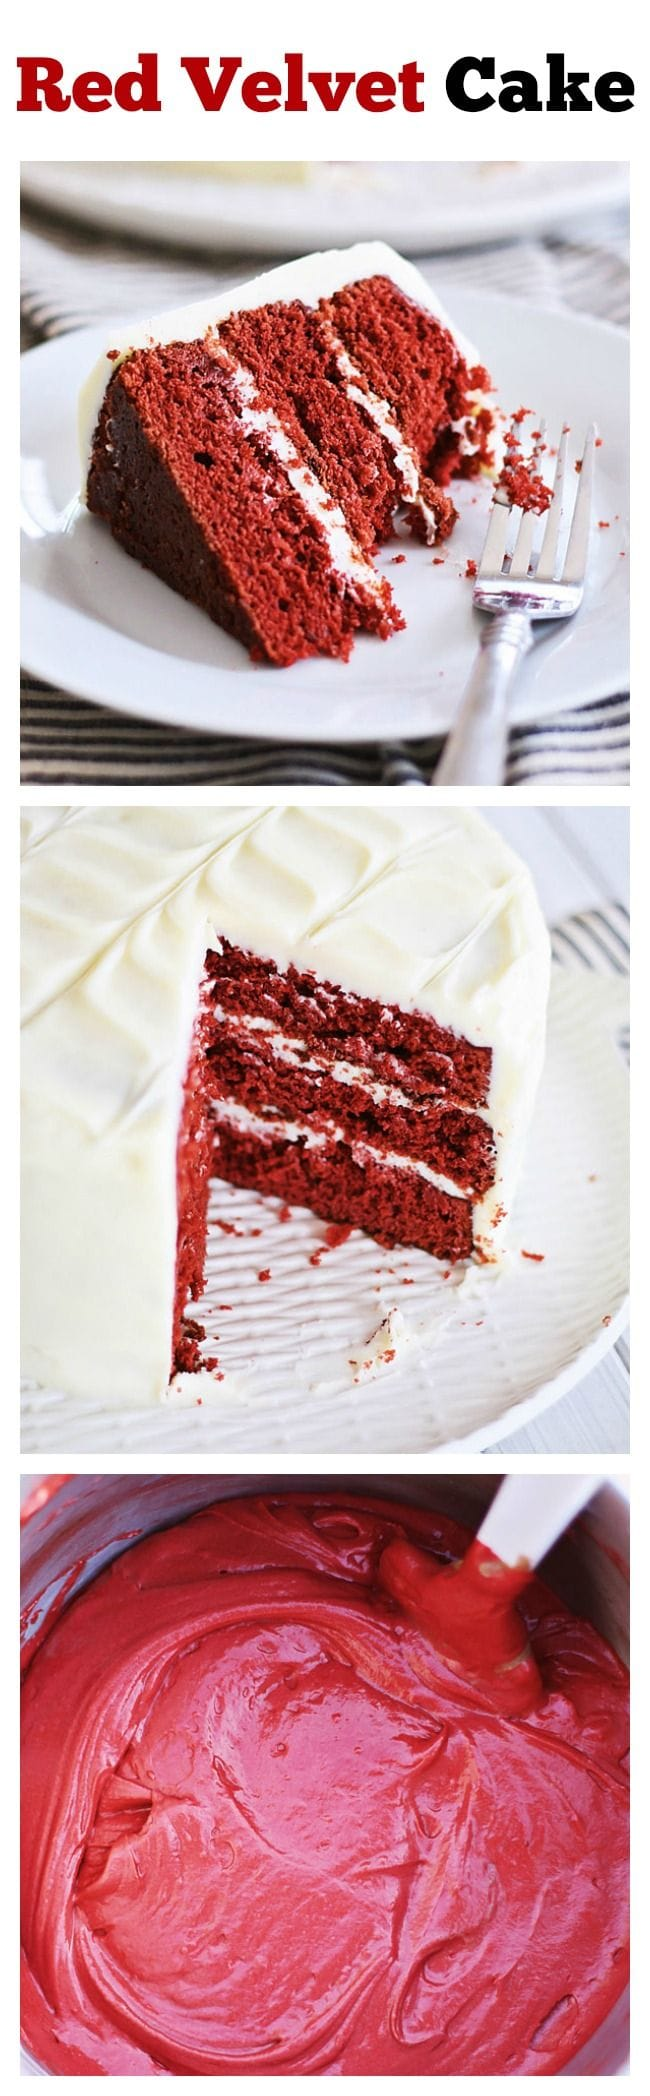 Red Velvet Cake – delicious cake loaded with cream cheese frosting, perfect for anytime of the year but especially festive for the holidays season. Get the easy recipe | rasamalaysia.com